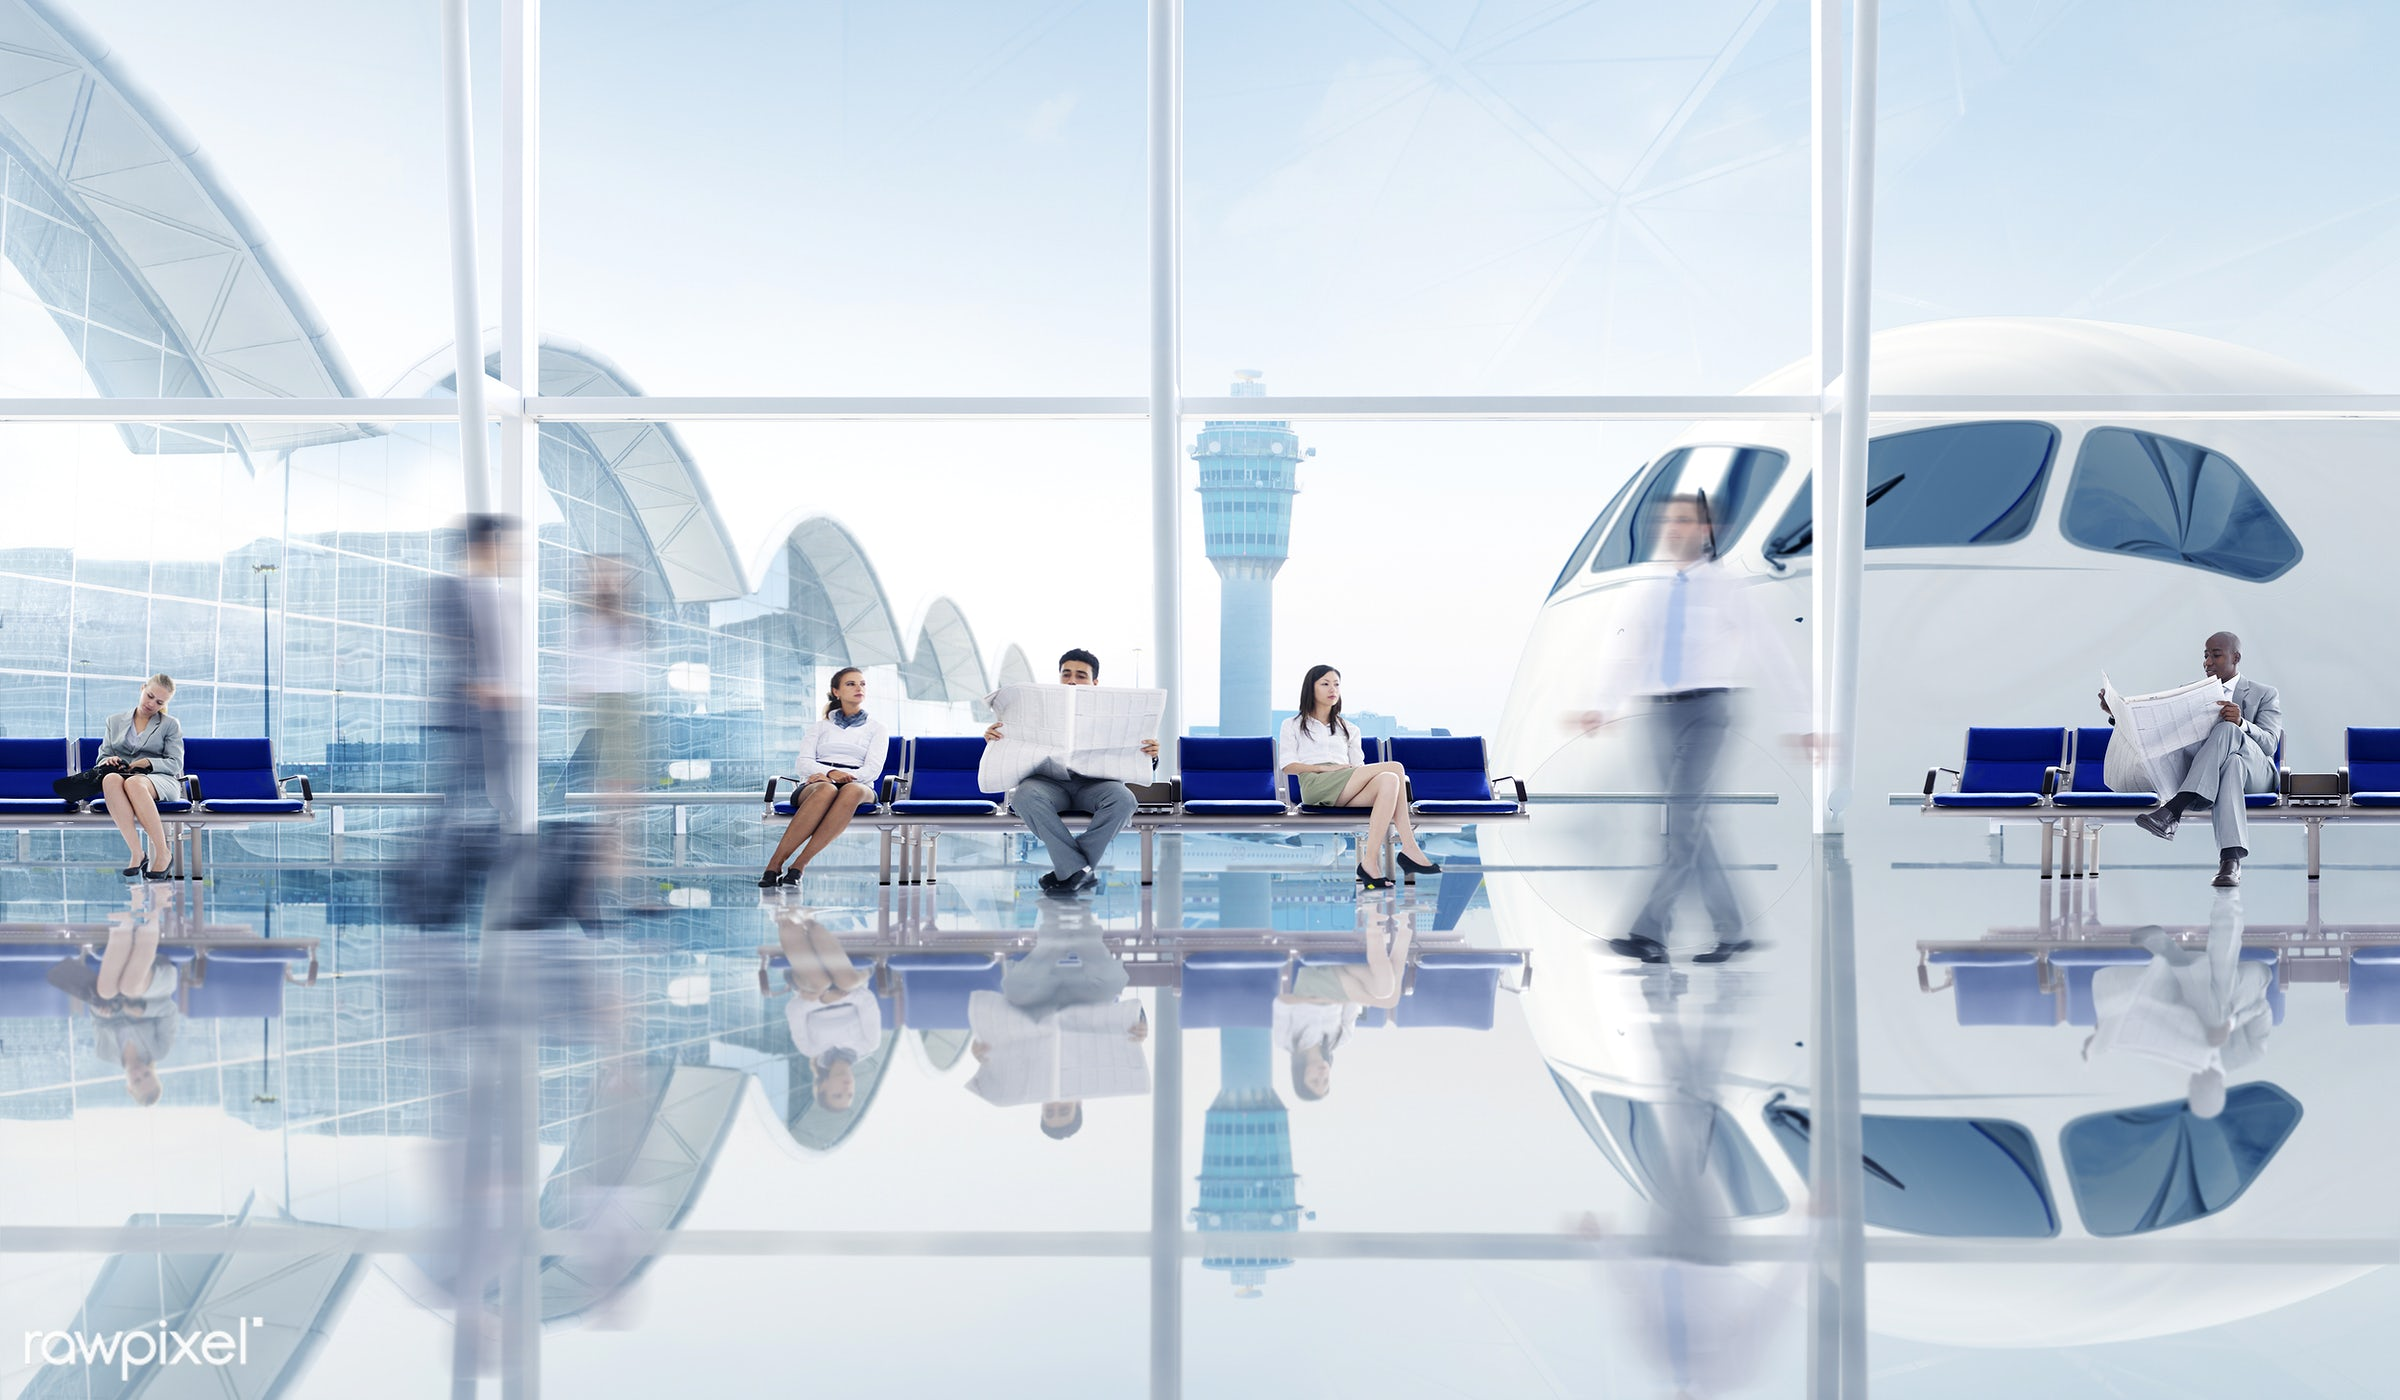 airplane, airport, airport lounge, business, business person, business travel, cityscape, control tower, day, delayed,...